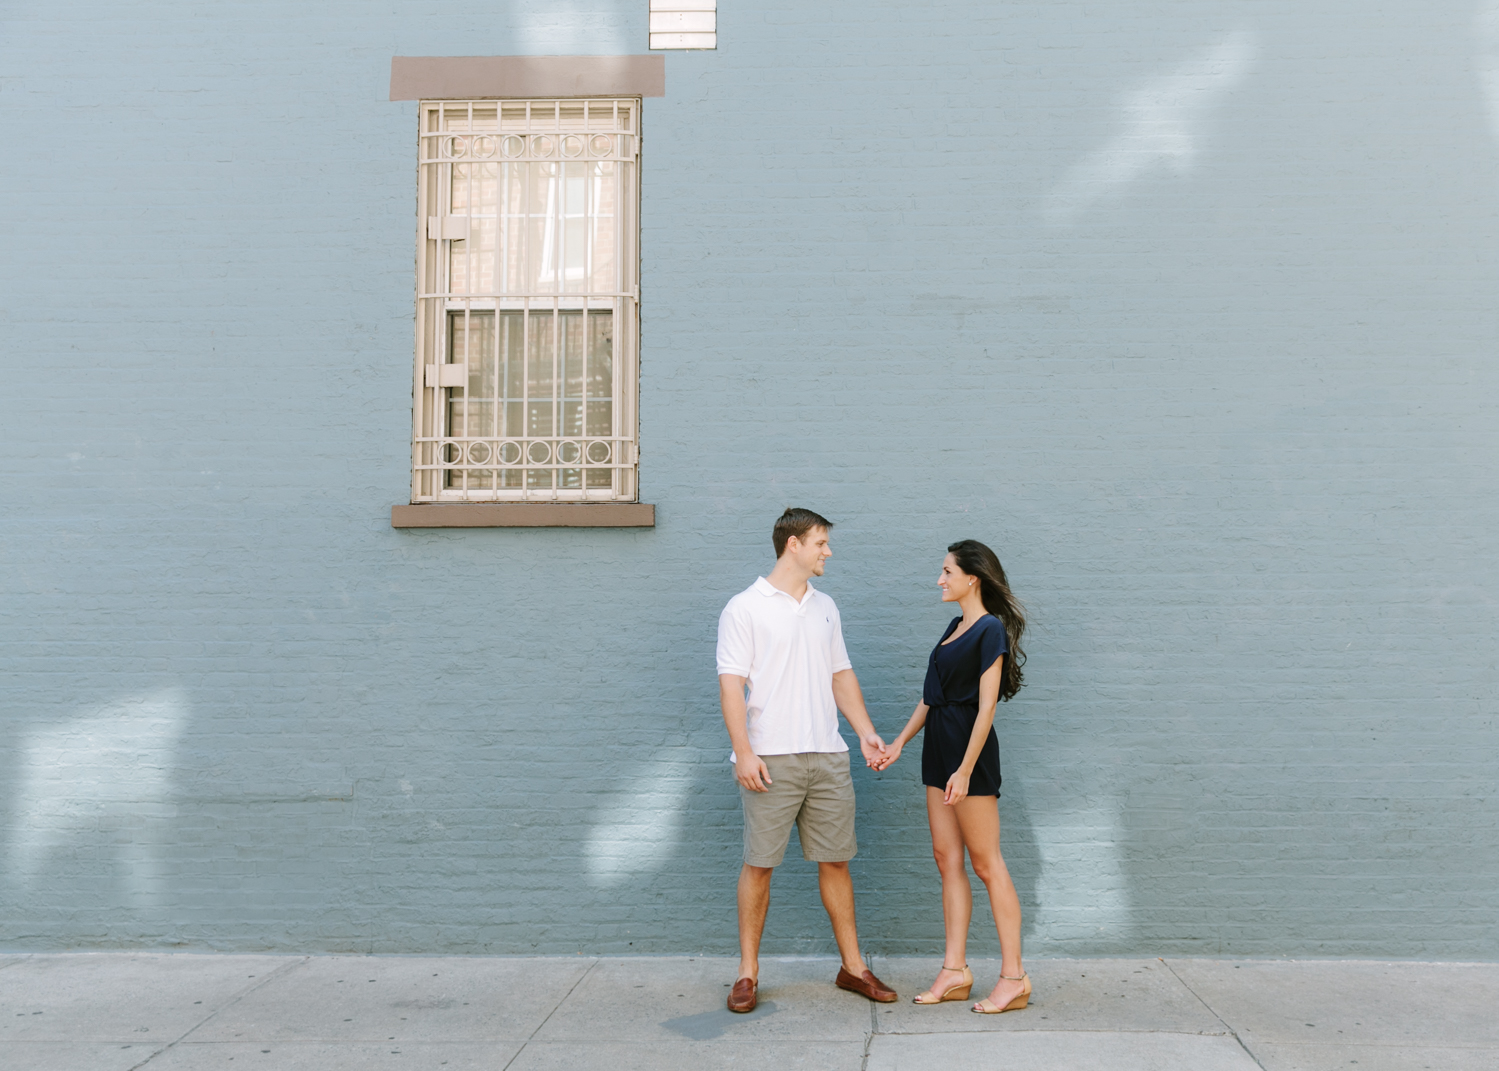 NYC-engagement-photos-by-Tanya-Isaeva-11.jpg